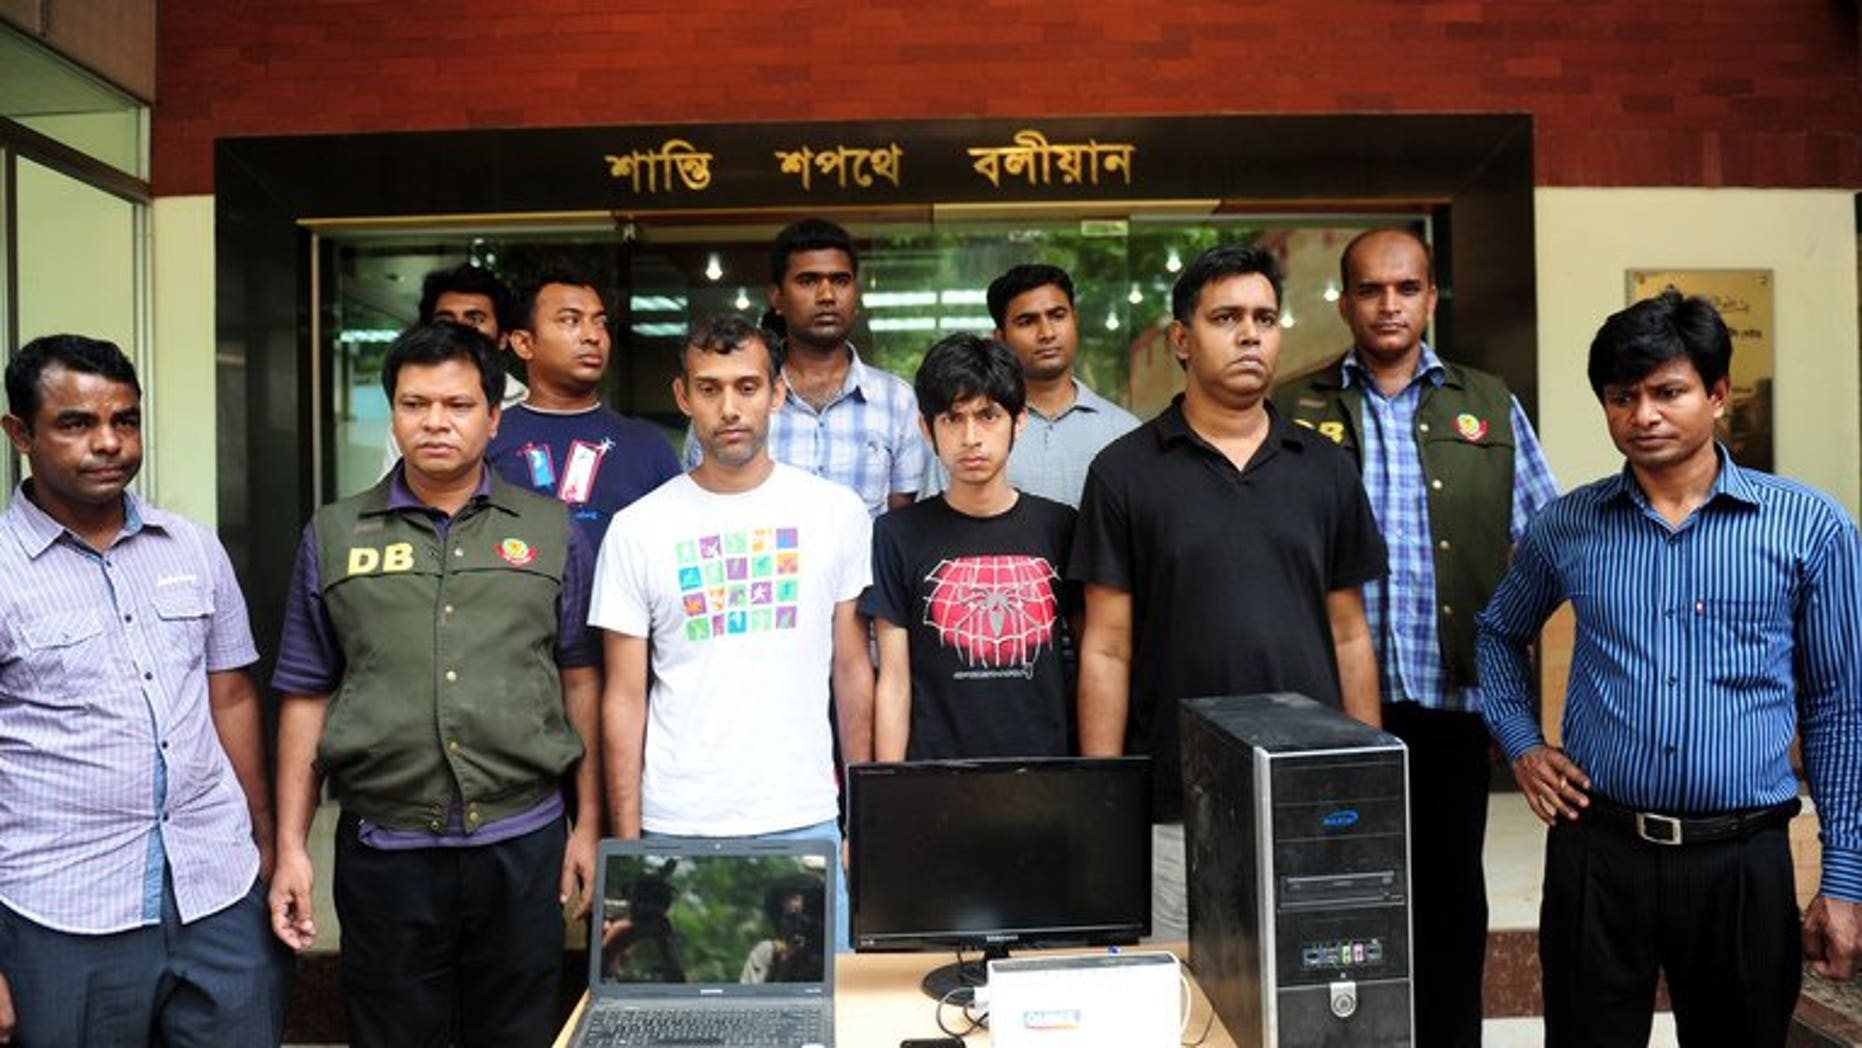 Bangladeshi police officials pose with three bloggers (C) during a press conference in Dhaka on April 2, 2013. Four Bangladeshi bloggers are facing up to seven years in jail after they were charged in court Sunday with defaming Islam and the Prophet Mohammed, a prosecutor told AFP.